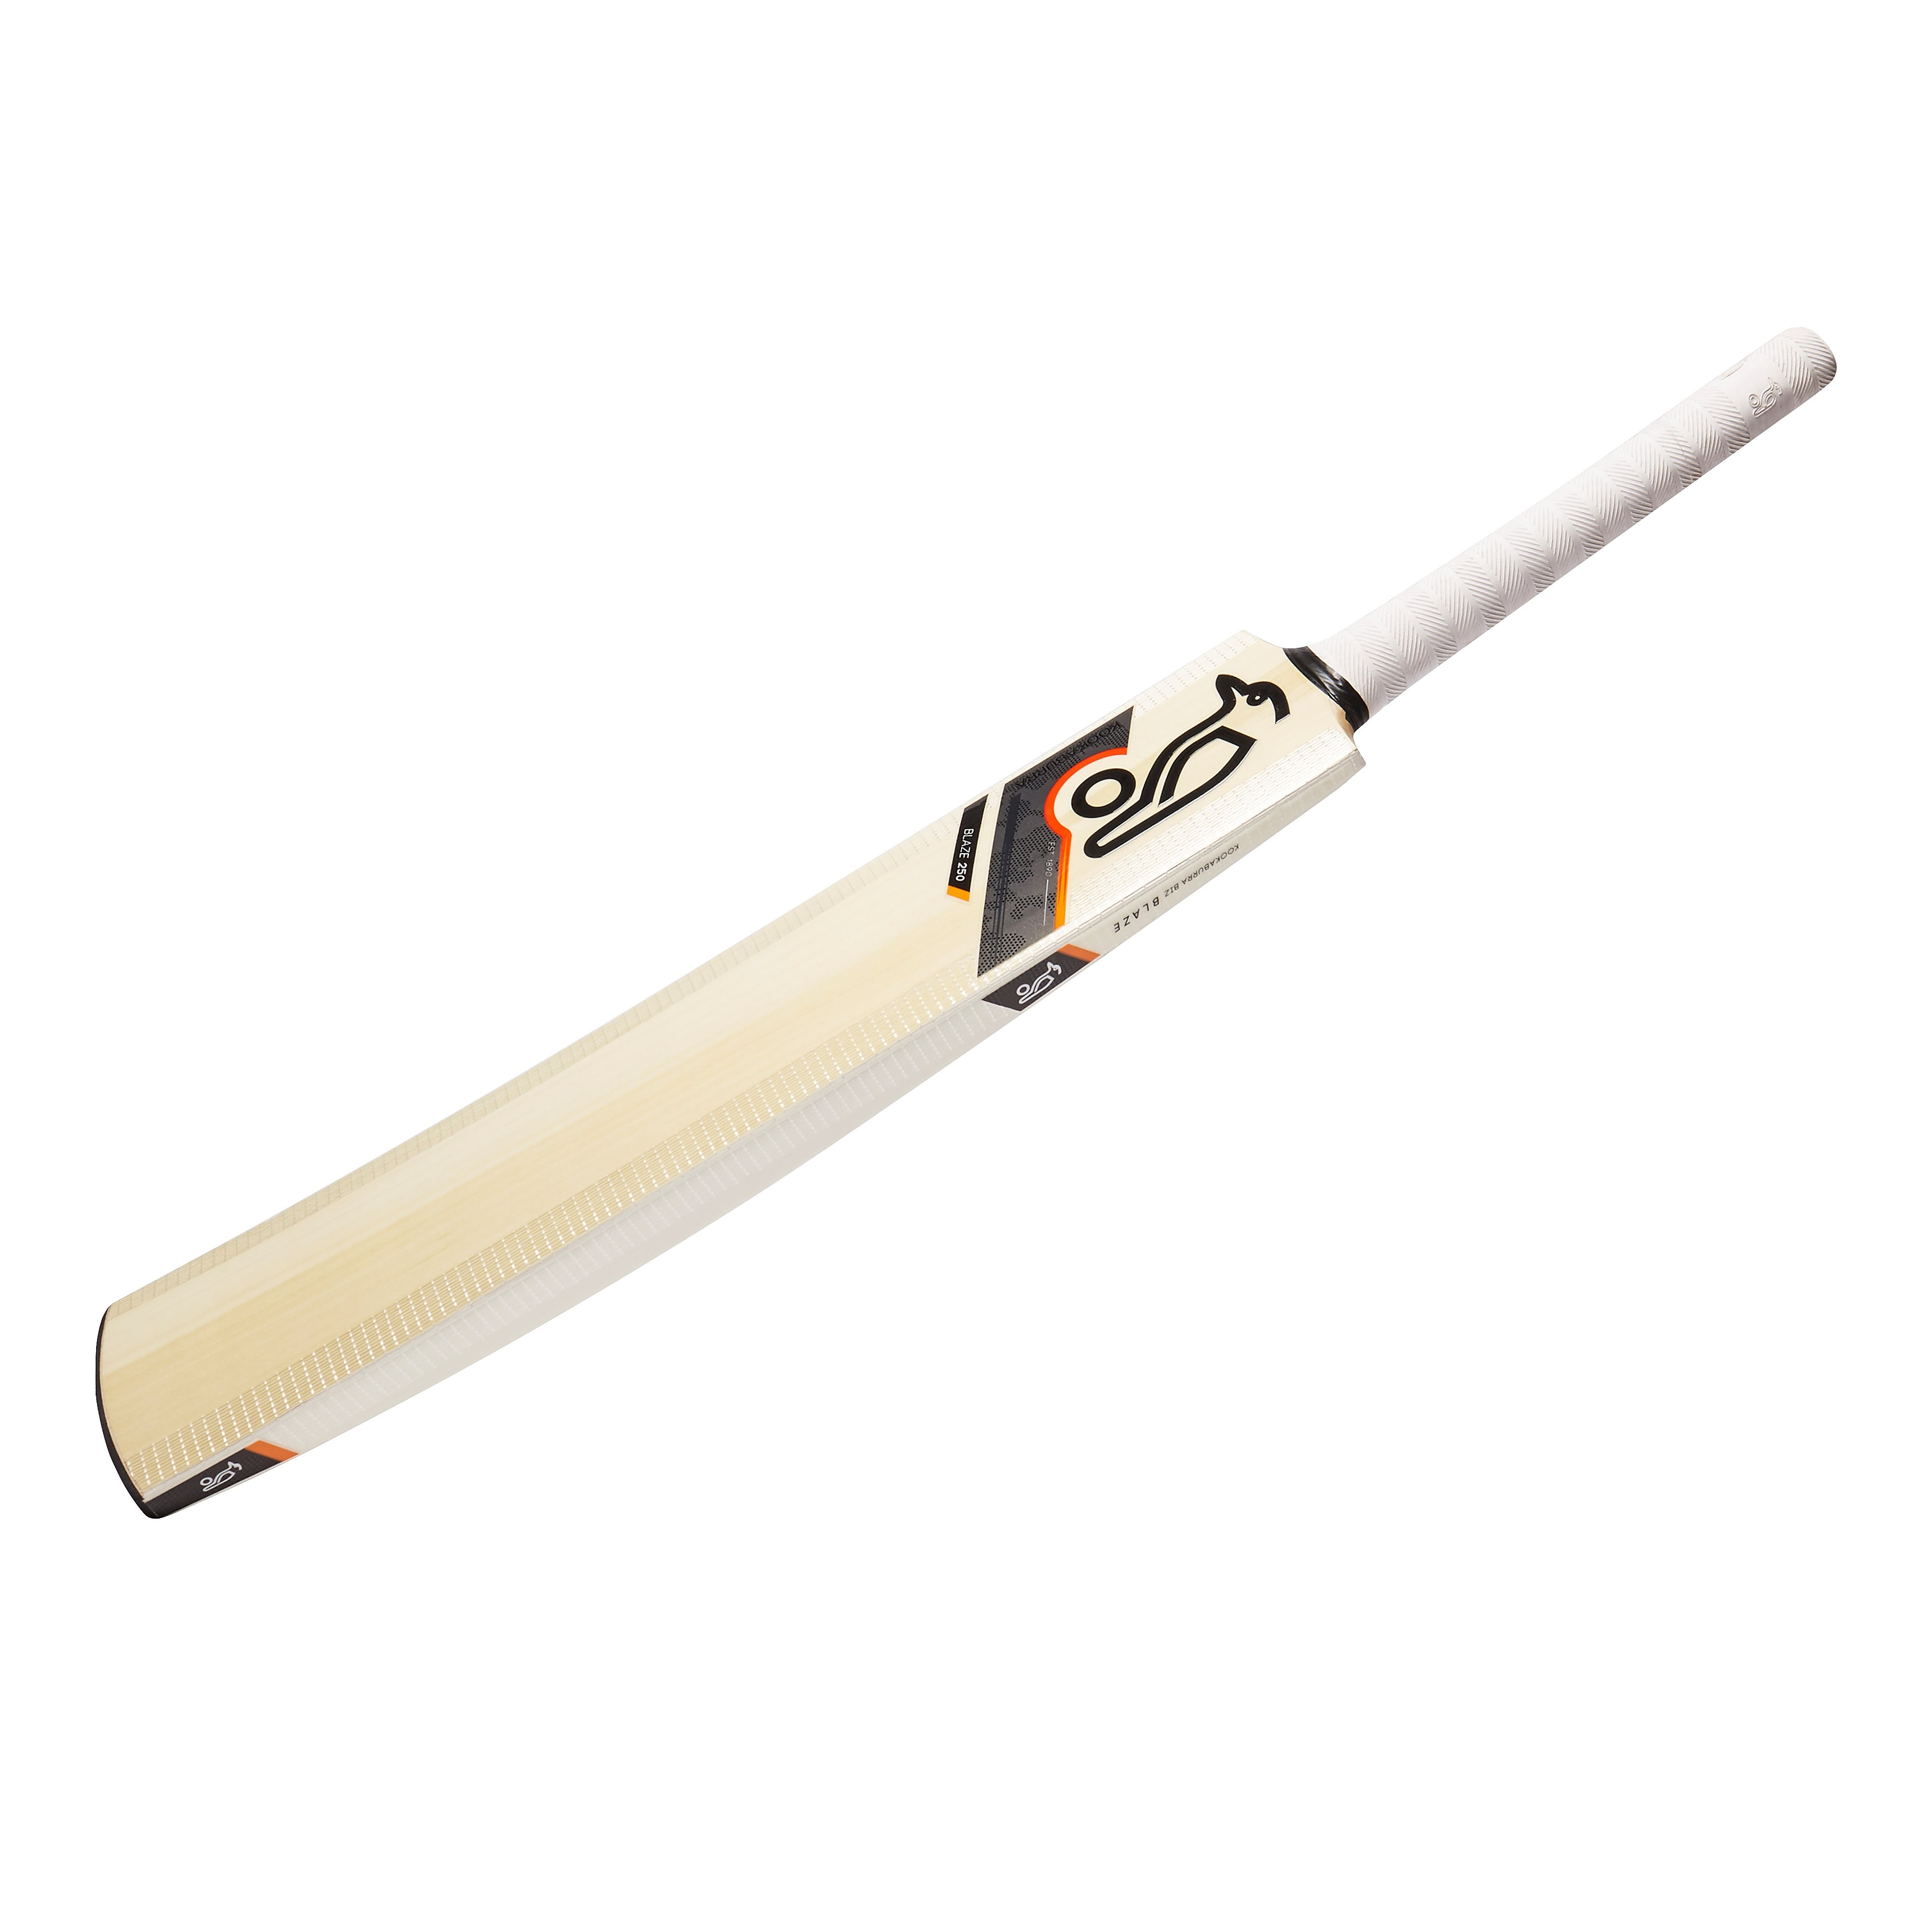 Kookaburra Blaze 250 Junior Cricket Bat